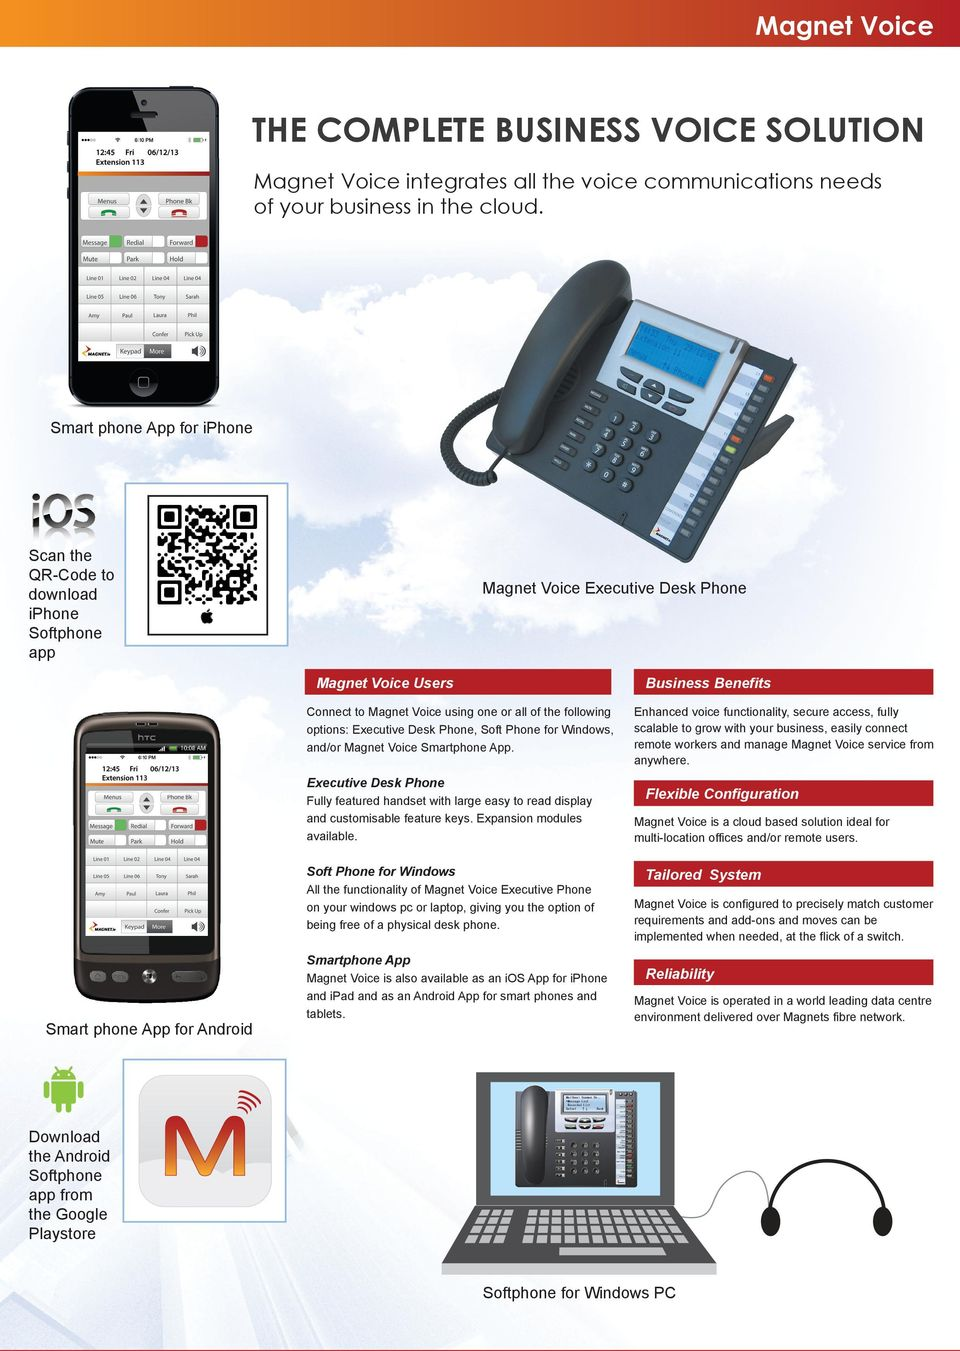 Windows, and/or Smartphone App. Desk Phone Fully featured handset with large easy to read display and customisable feature keys. Expansion modules available.